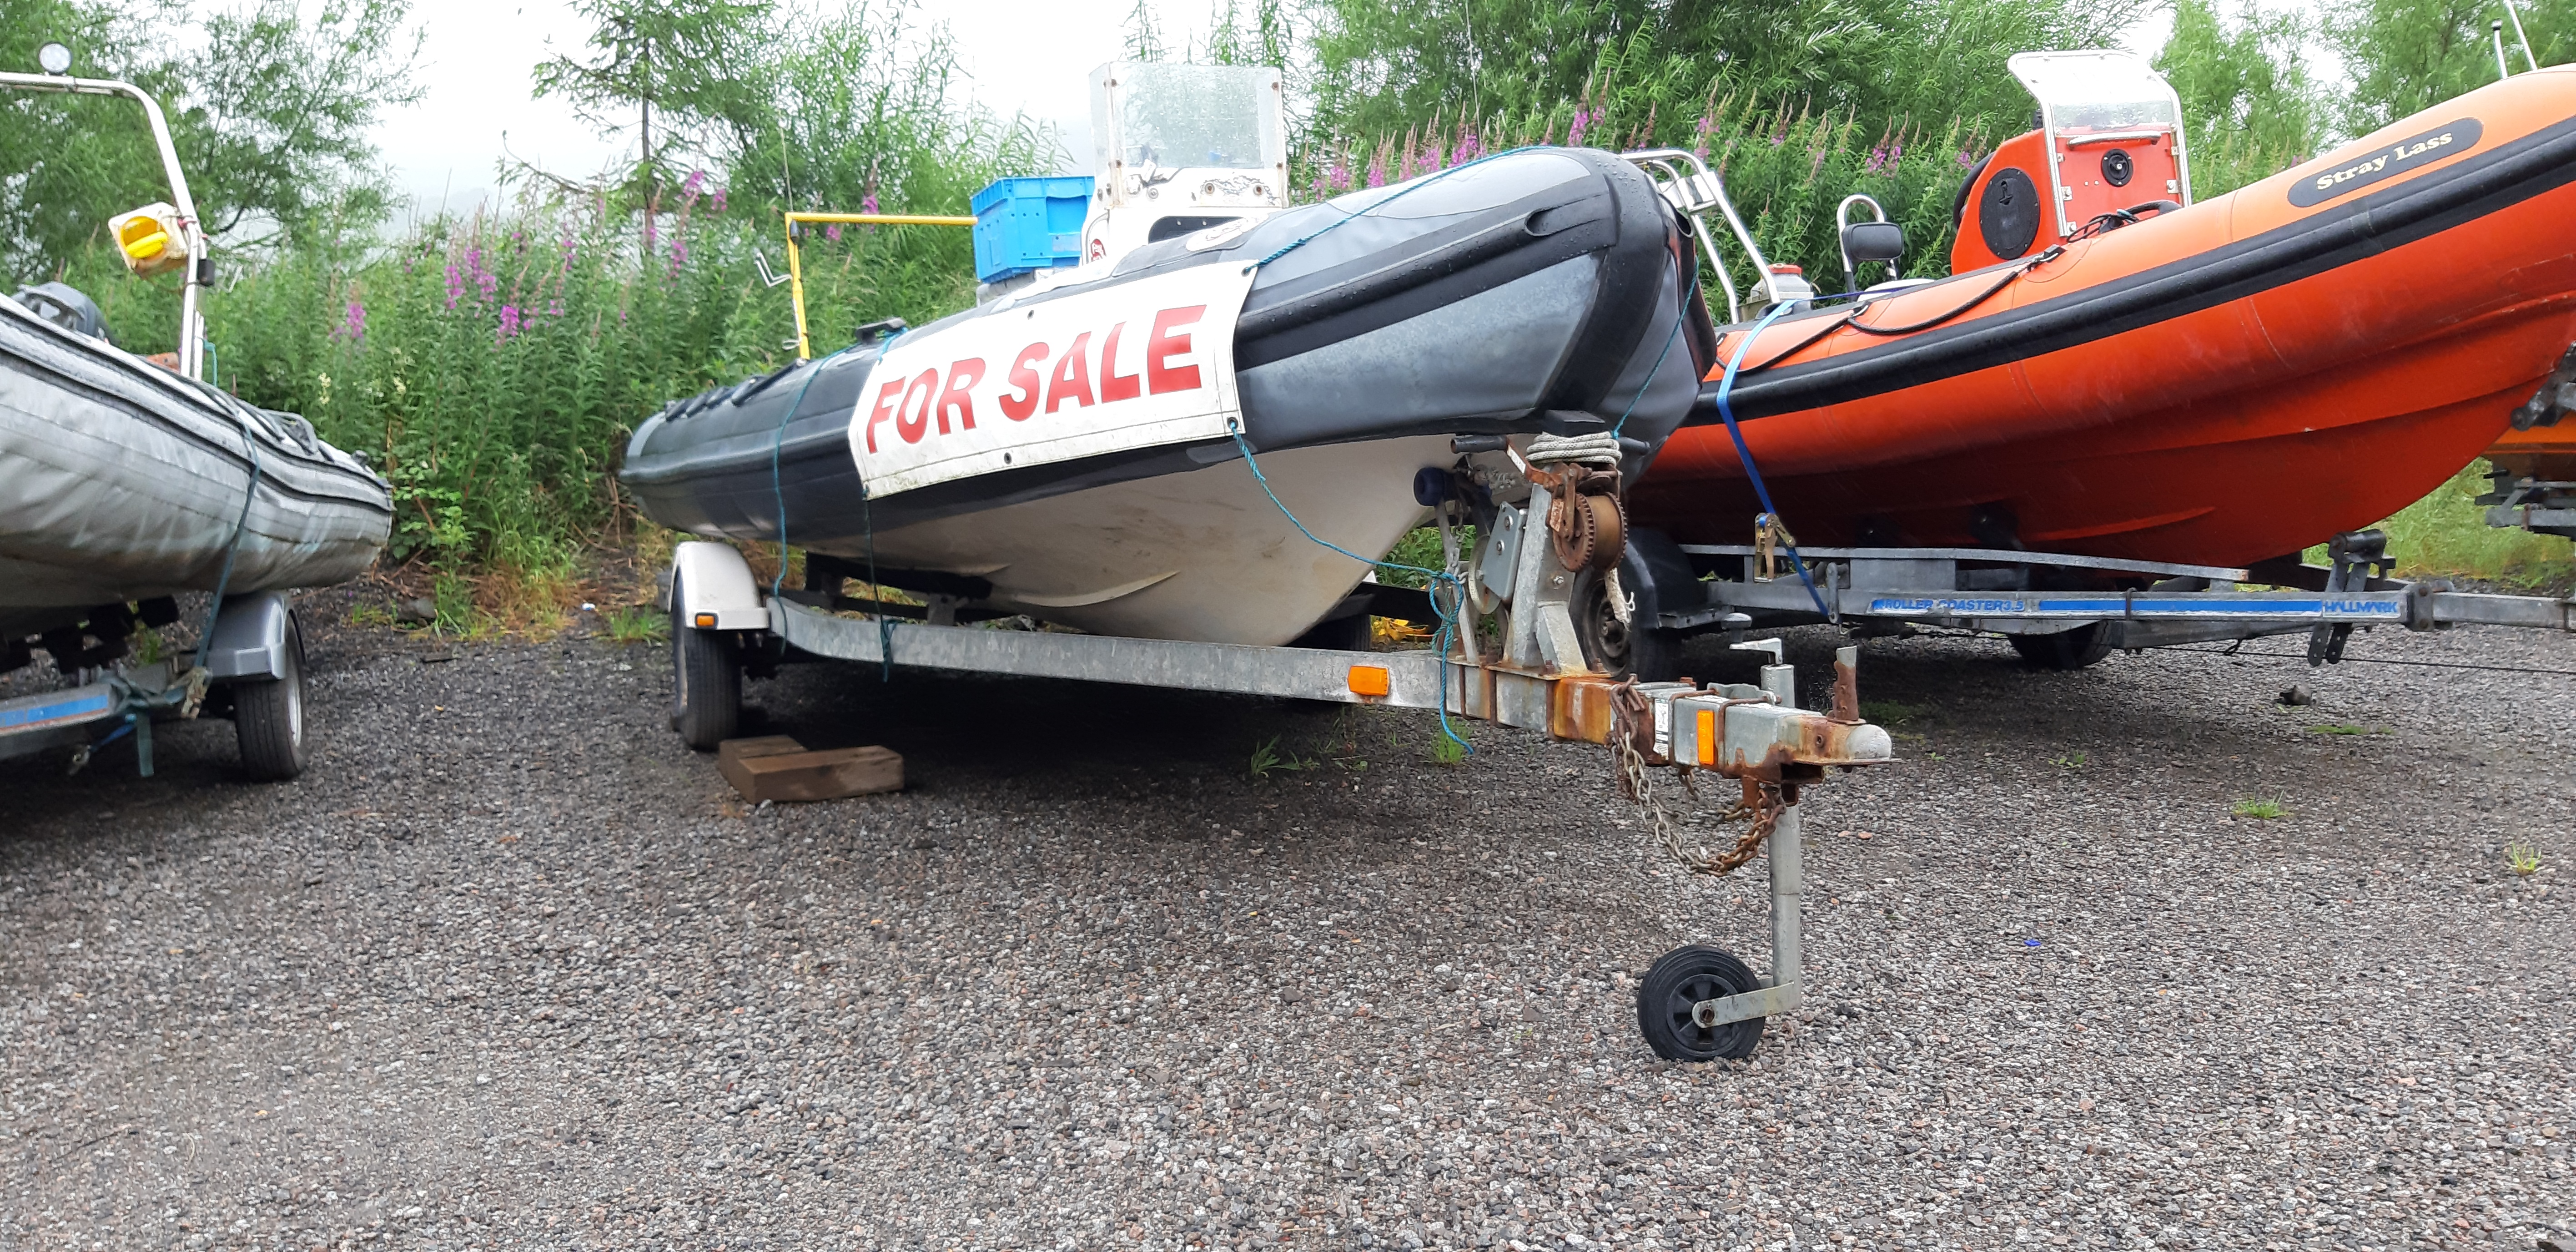 Used Boats, Second Hand Boats for Sale - Ardoran Marine